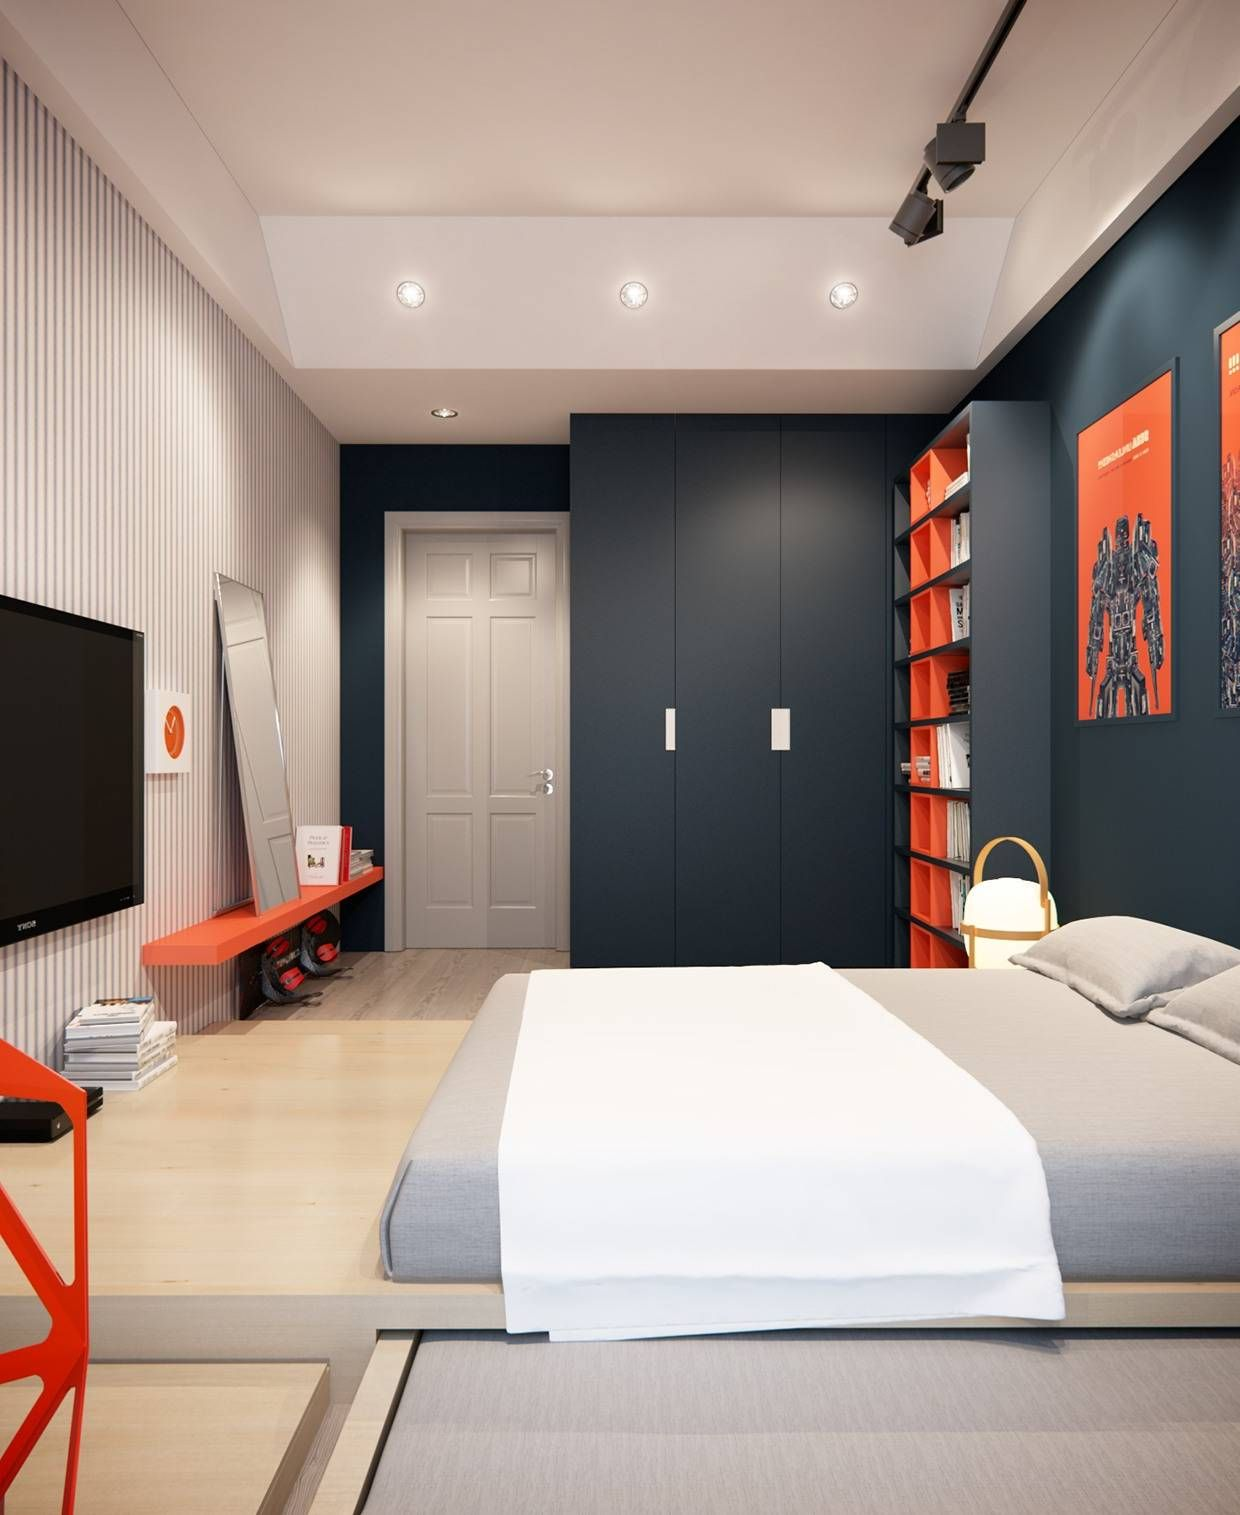 20 Cool Boys Bedroom Ideas to Try at Home